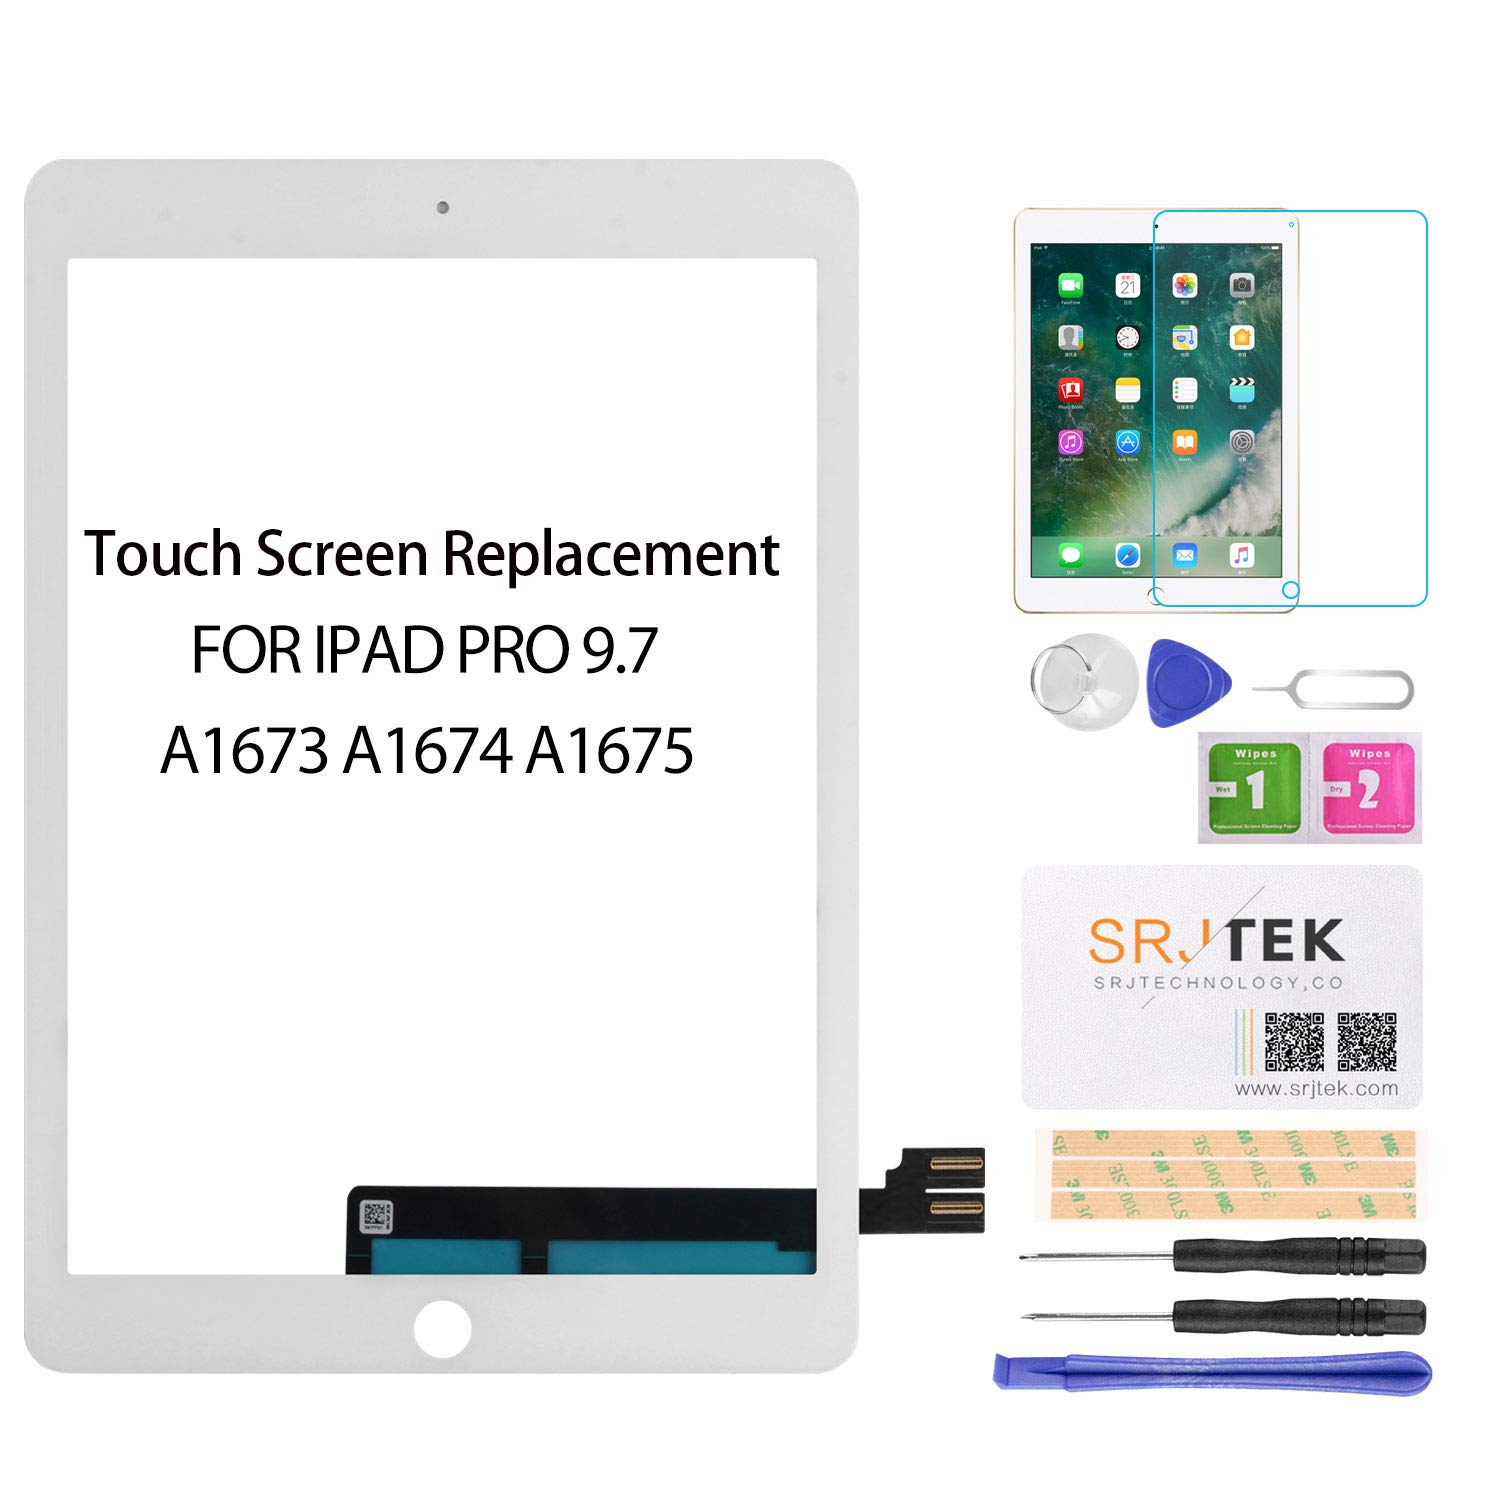 SRJTEK for iPad Pro 9.7 Screen Replacement Touch Screen Replacement,Touchscreen,Touch Digitizer,Glass Repair Parts Assembly Kit for iPad Pro 9.7 2016  A1673 A1674 A1675(LCD Not Include) White